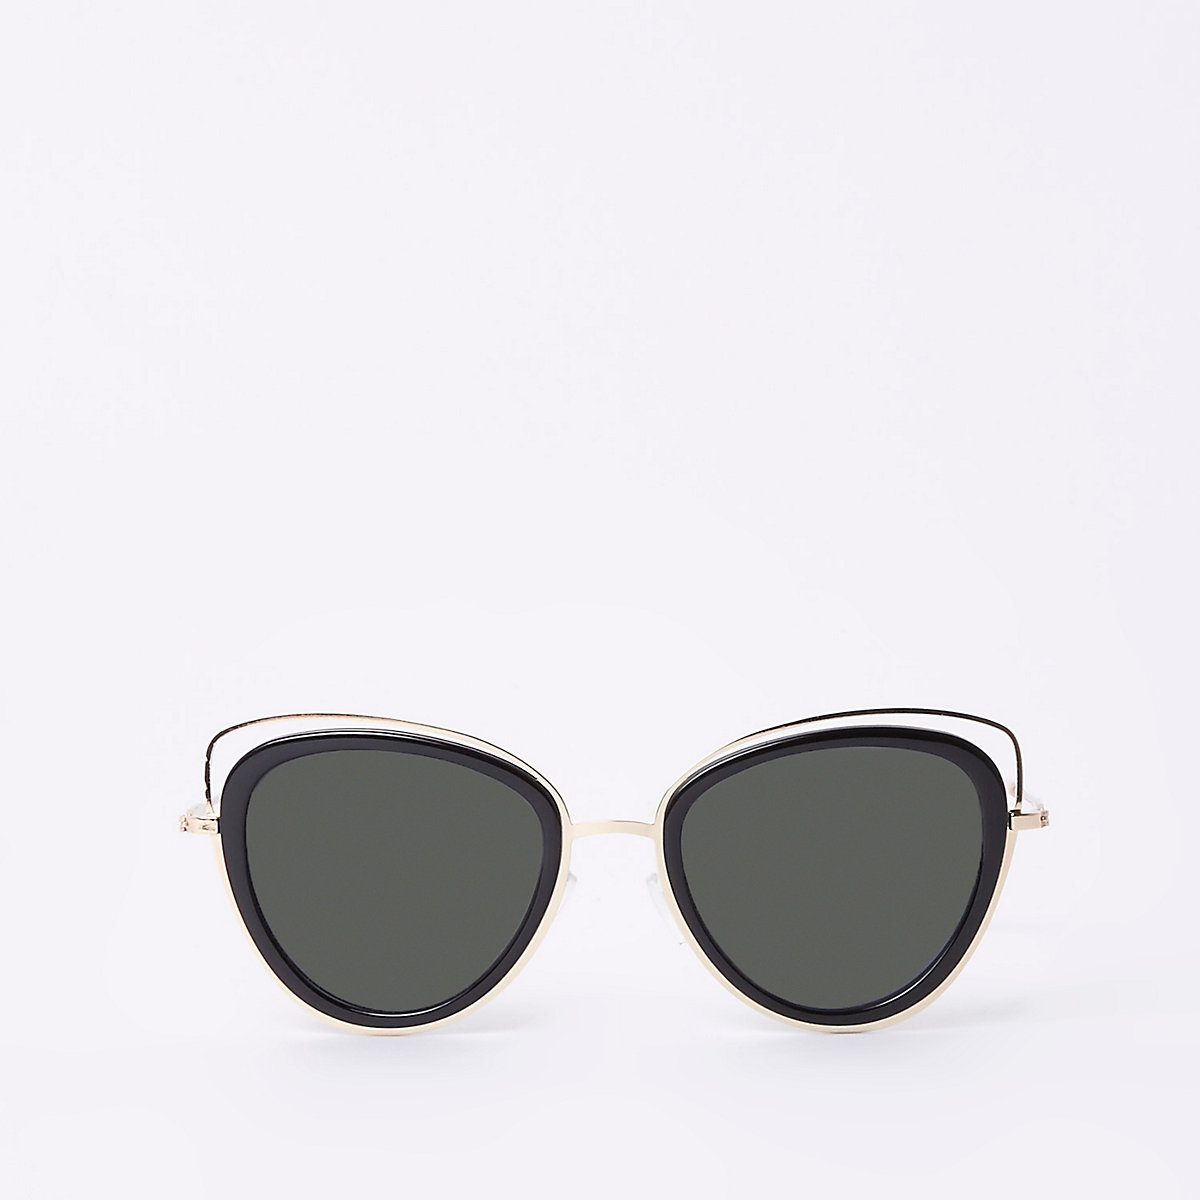 Gold tone cat eye cut out sunglasses